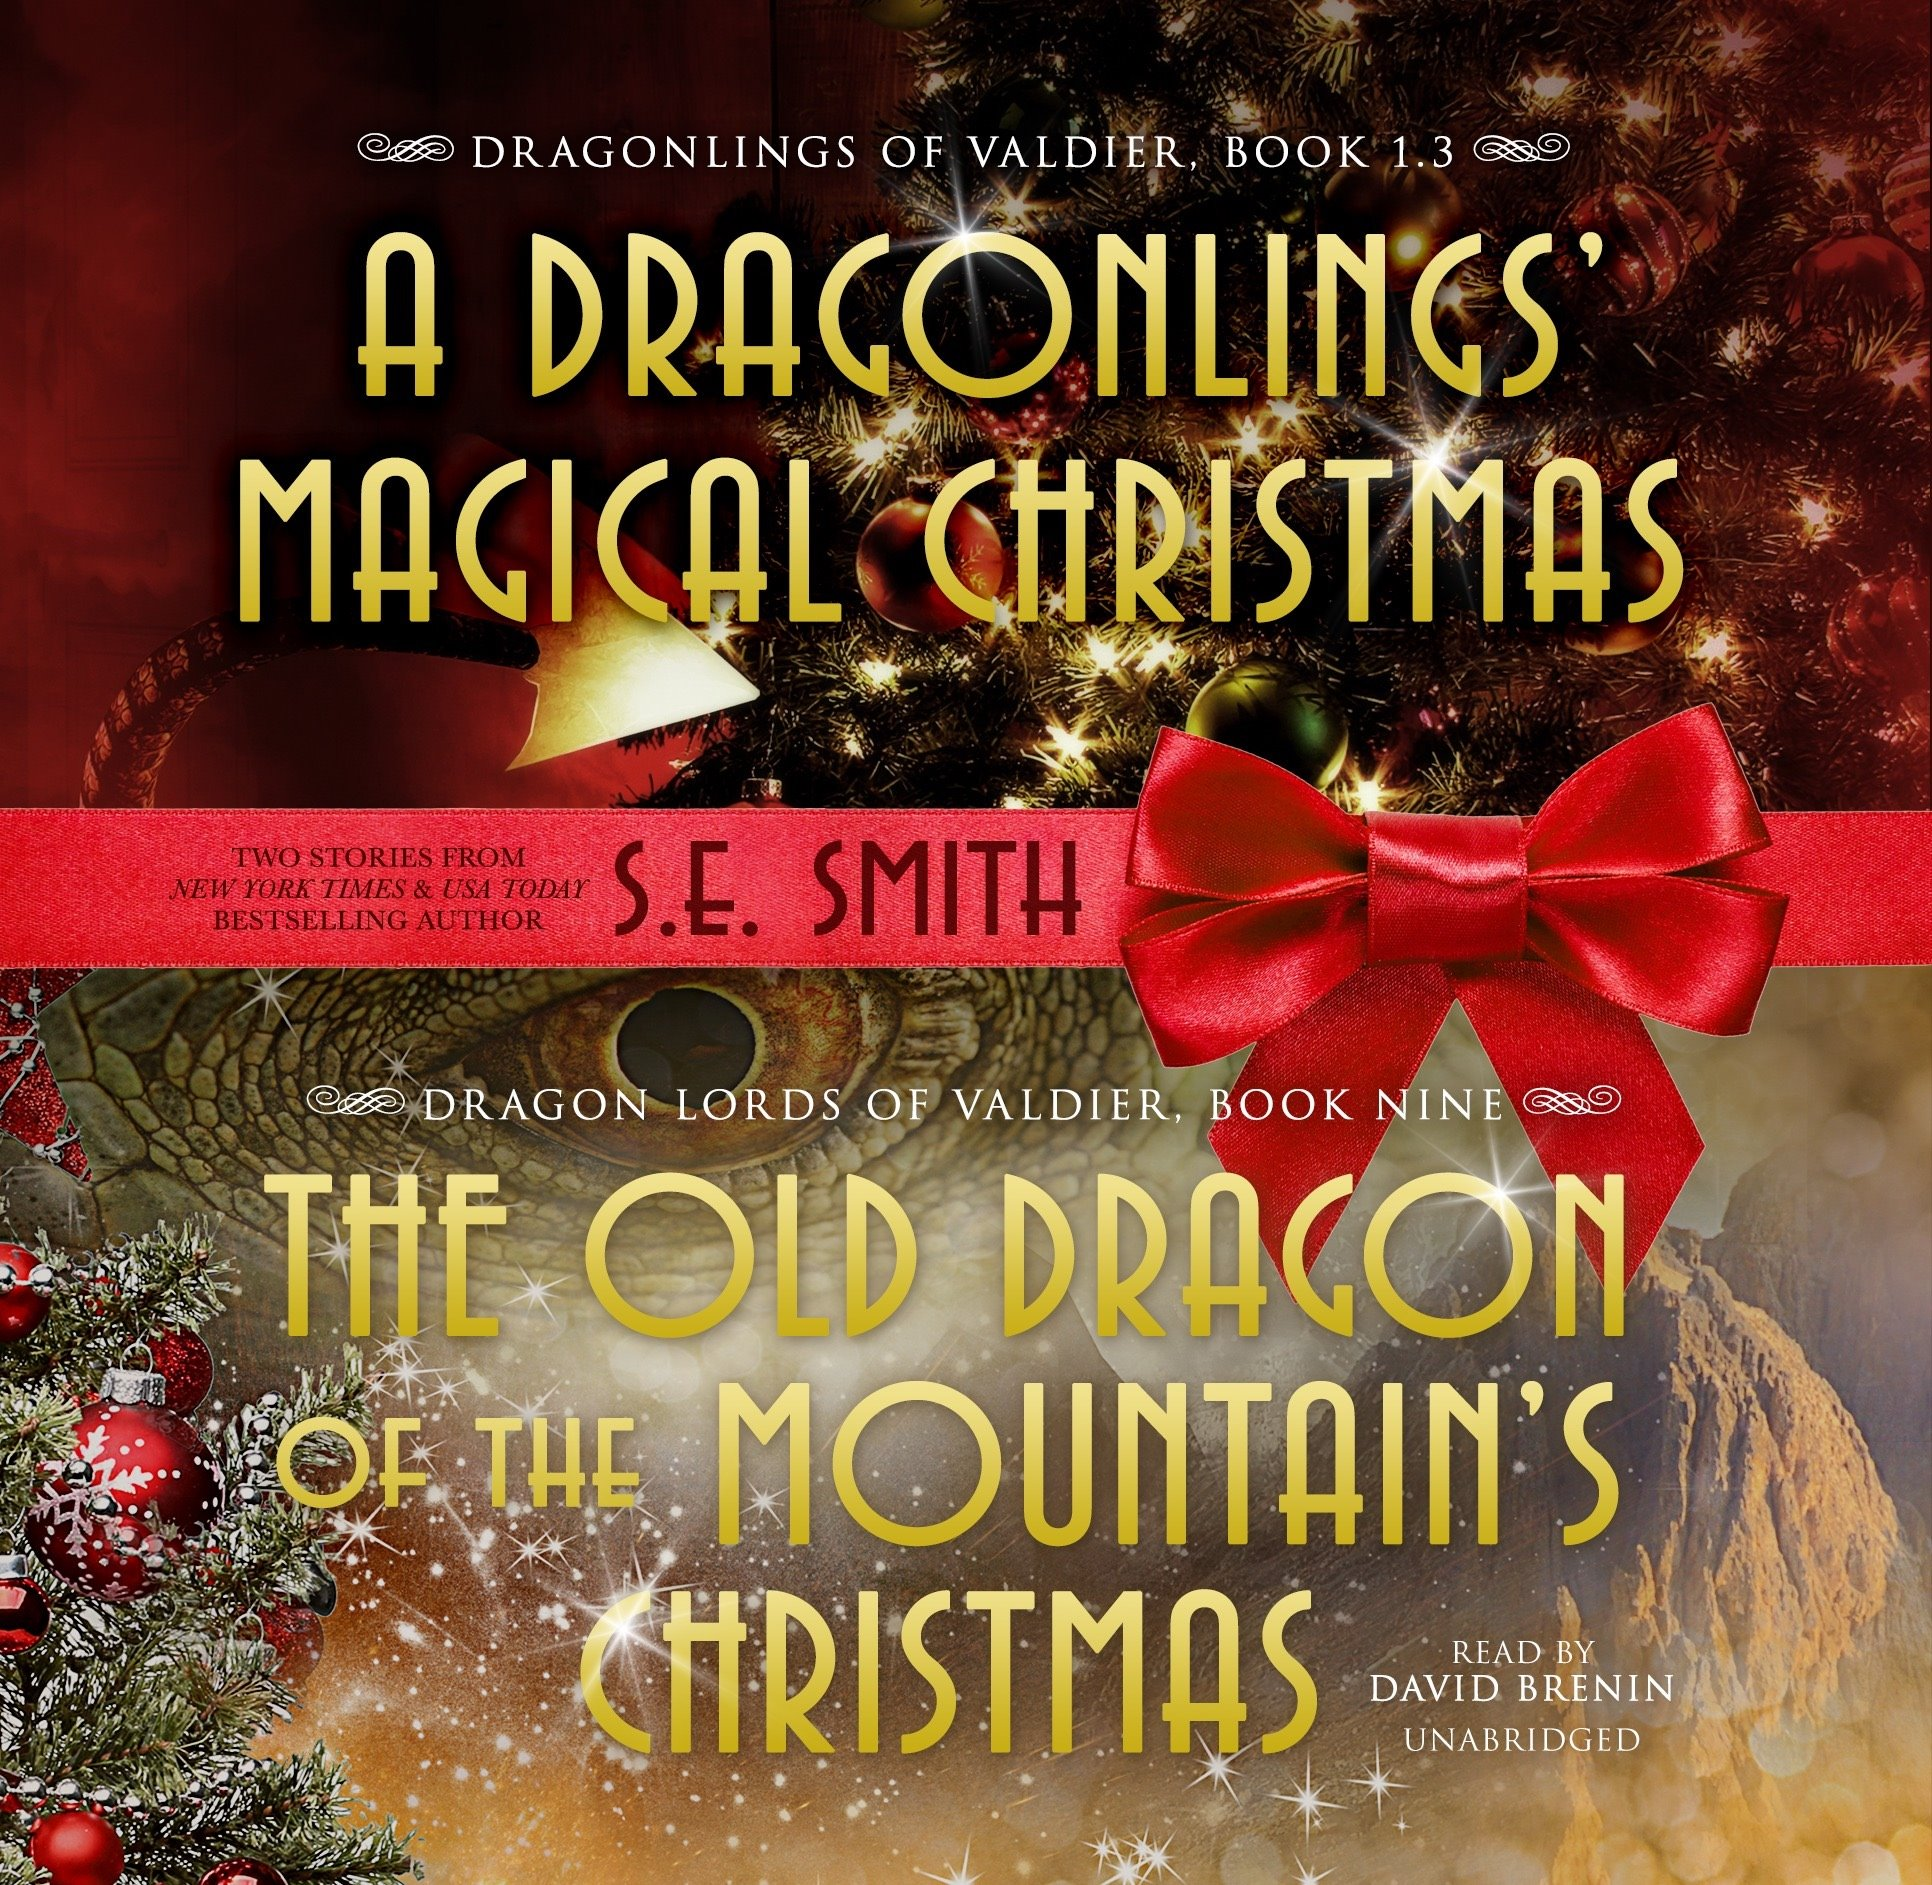 A Dragonlings' Magical Christmas/The Old Dragon of the Mountain's Christmas (Audiobook CD Bundle)